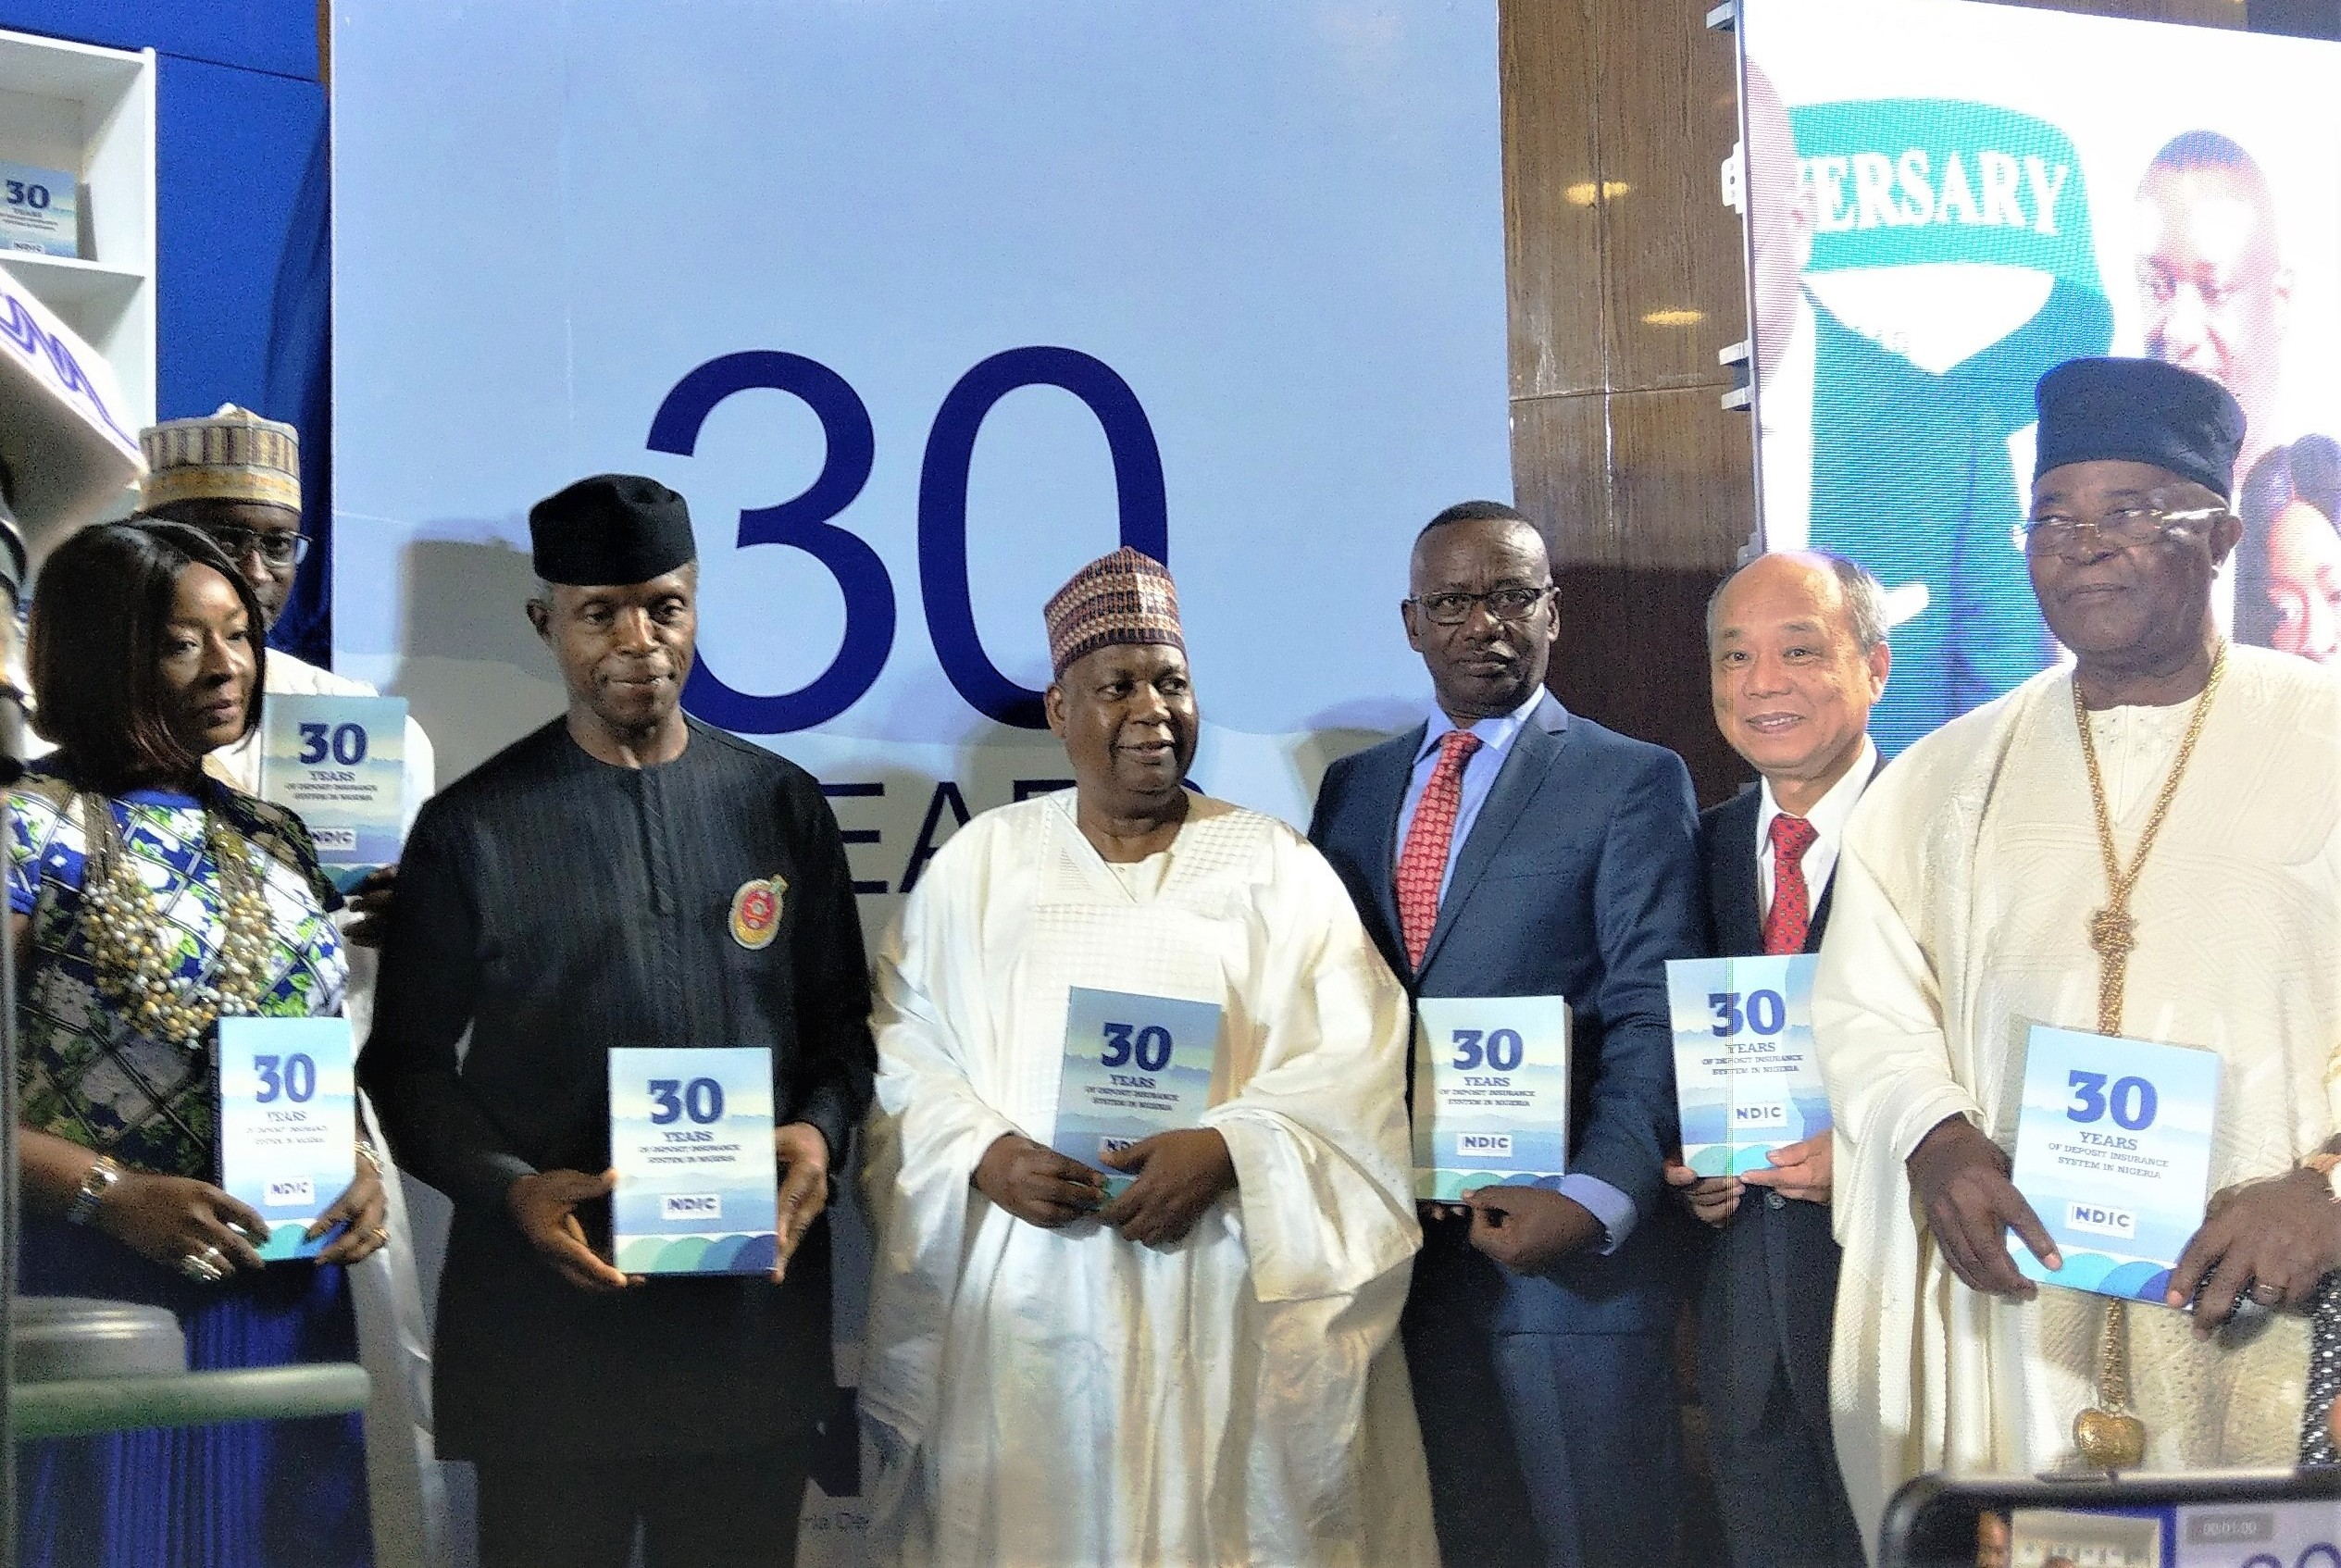 CDIC Chairman Michael Lin led a delegation to attend the 30th Anniversary of the Nigeria Deposit Insurance Corporation (NDIC) and delivered a remark in mid-October 2019